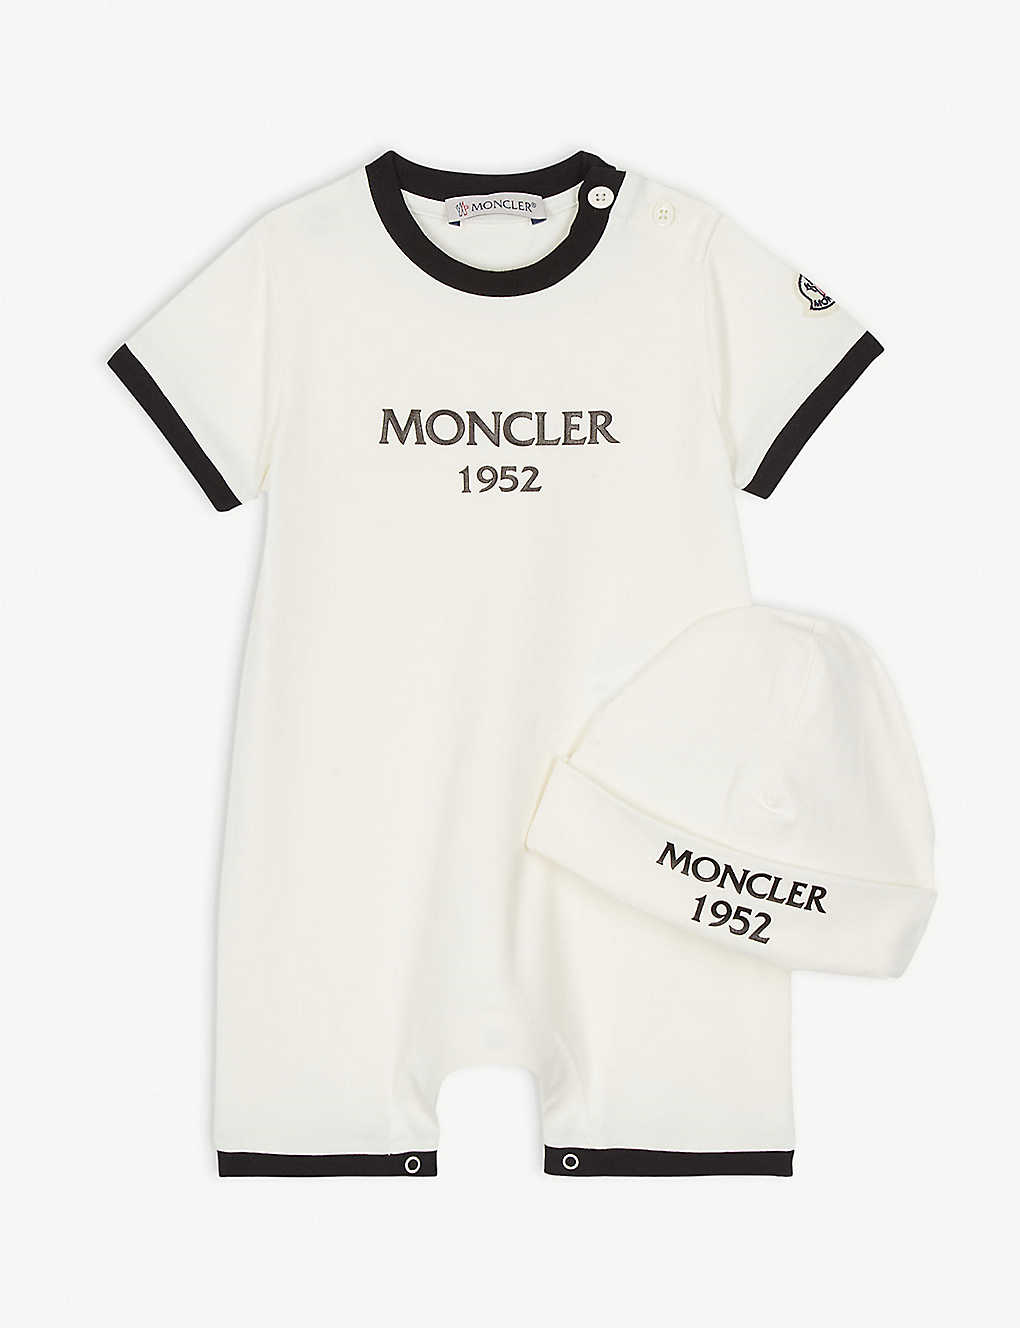 MONCLER: Branded hat and romper gift set 1-18 months